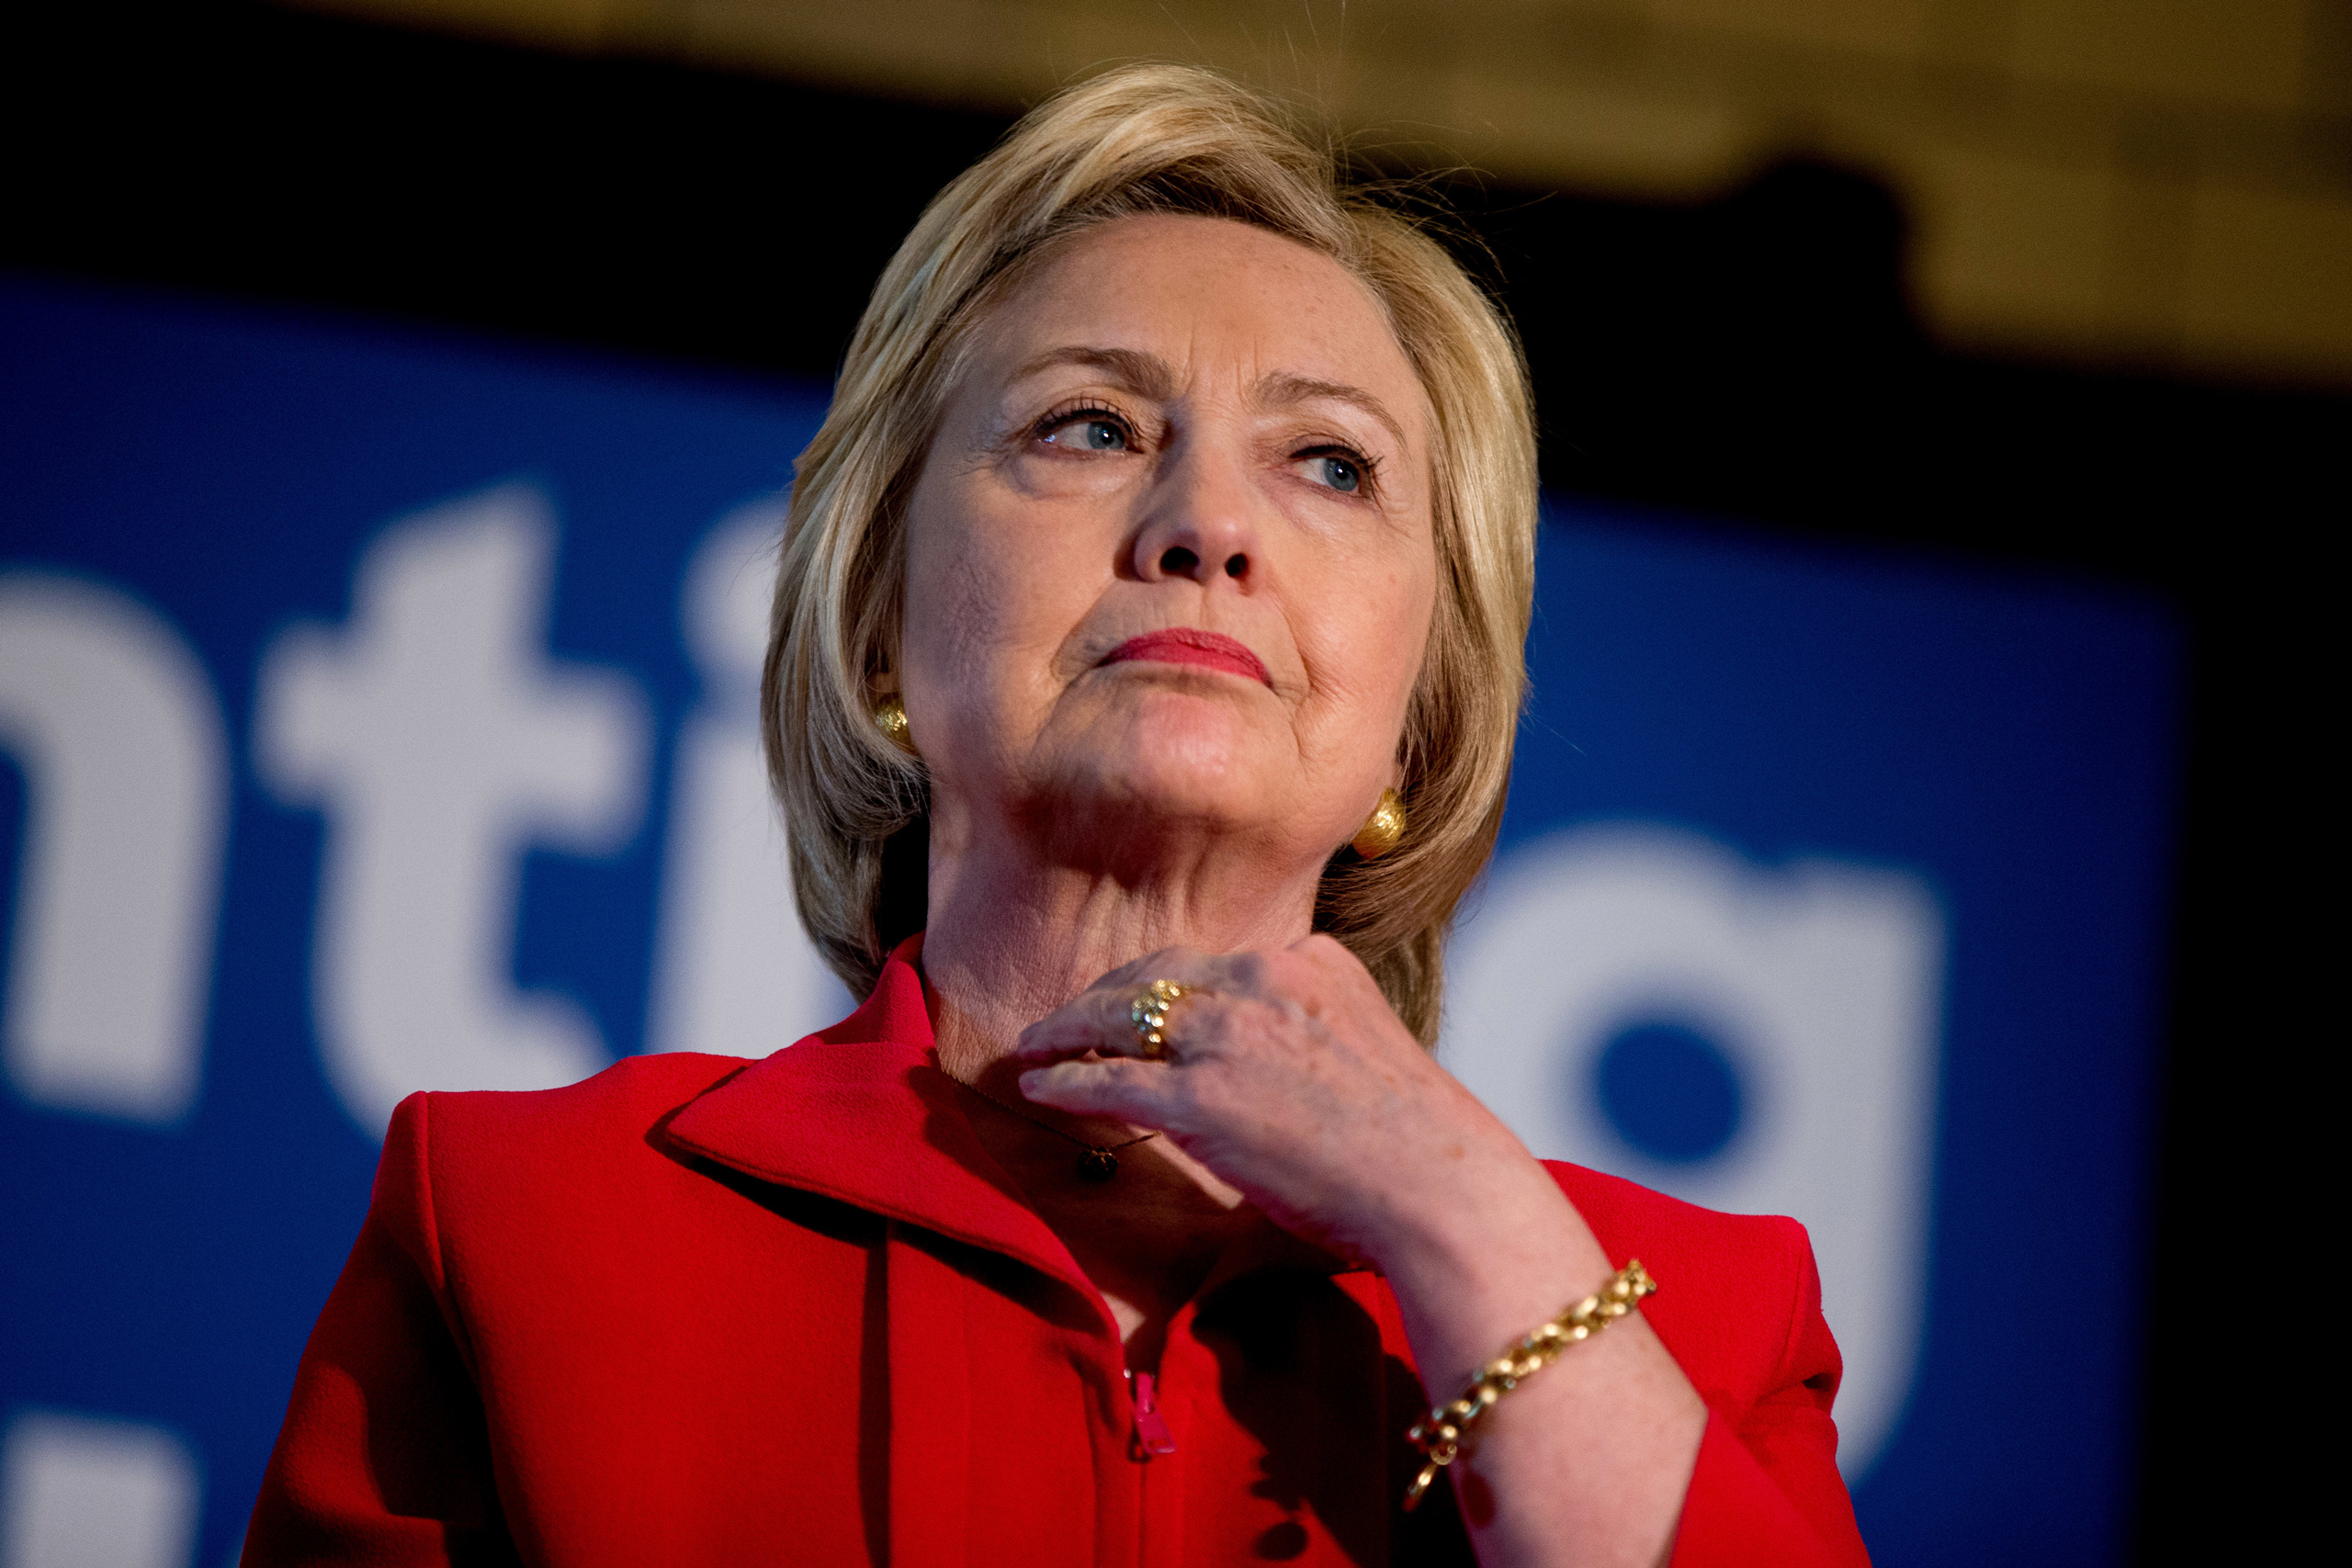 Democratic presidential candidate Hillary Clinton waits to speak at a get out the vote event at La Gala in Bowling Green, Ky., on May 16, 2016.